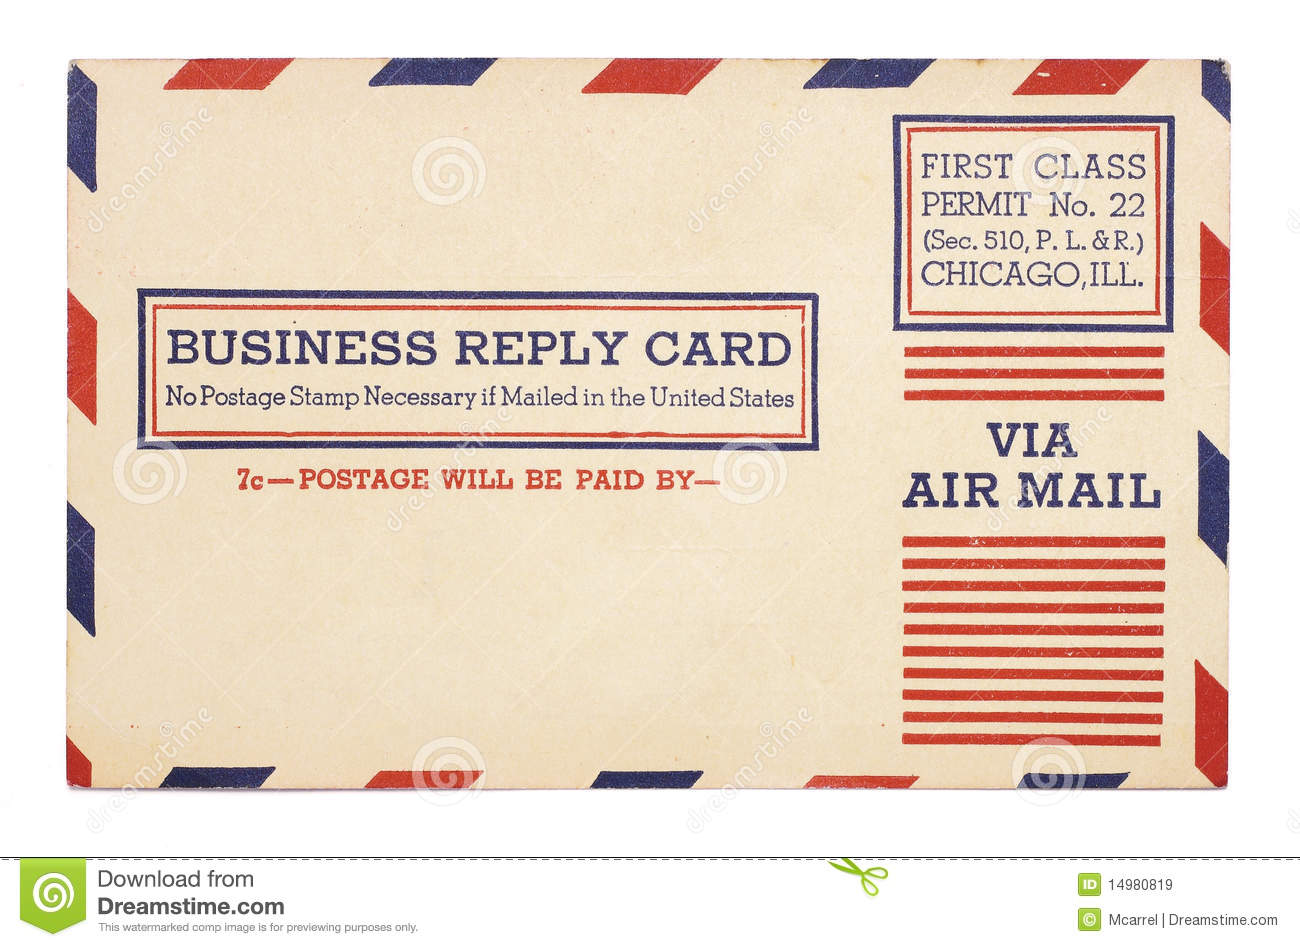 cobra printing productions usms business cards